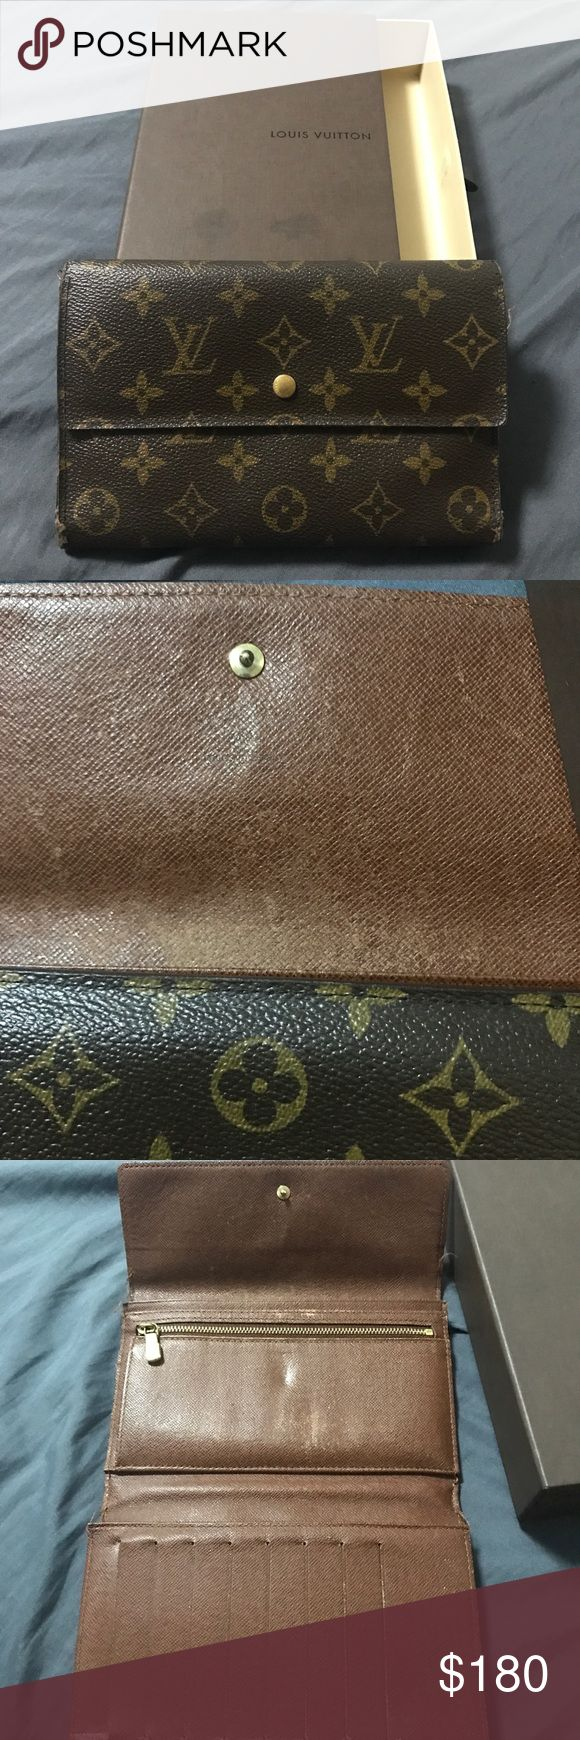 💯Authentic Louis Vuitton Monogram trifold Authentic Louis Vuitton Monogram trifold. definitely pre-loved. Shows wear on exterior canvas on corners (pls look at pictures) loose threading on corners & fading interior. Still has plenty of life left in her 😍. Comes with LV box. Louis Vuitton Bags Wallets